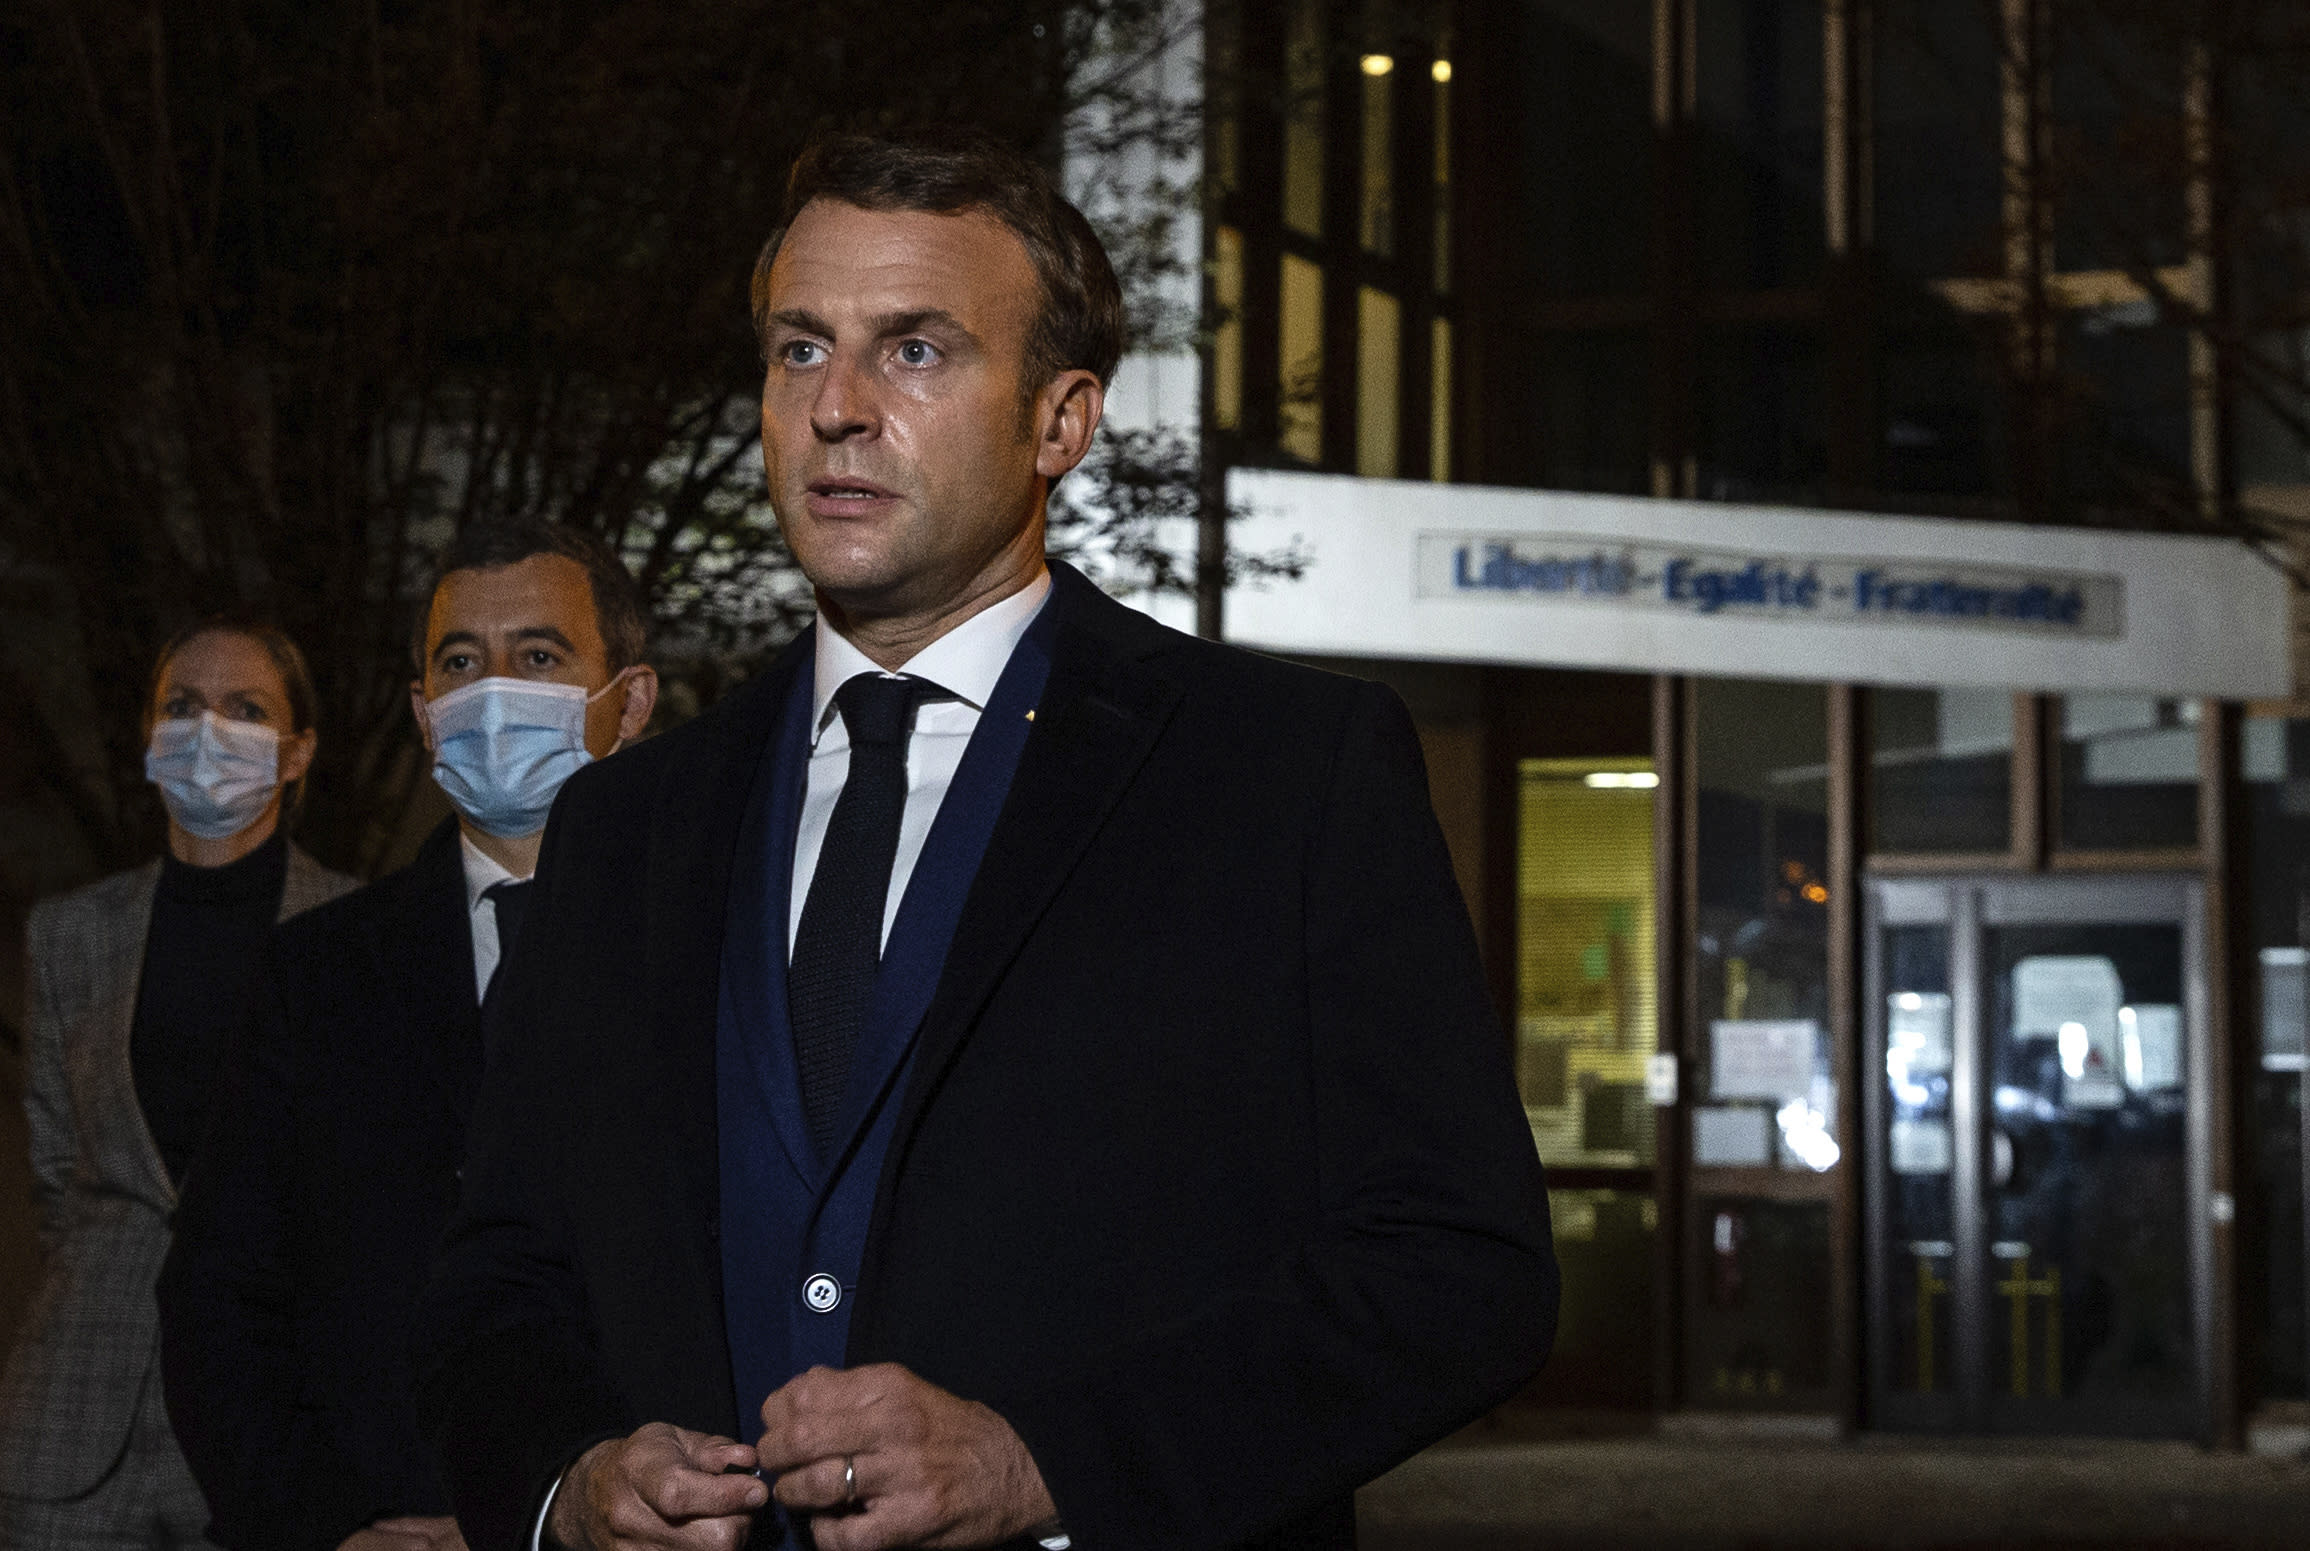 """French President Emmanuel Macron, flanked by French Interior Minister Gerald Darmanin, second left, speaks in front of a high school Friday Oct.16, 2020 in Conflans Sainte-Honorine, northwest of Paris, after a history teacher who opened a discussion with high school students on caricatures of Islam's Prophet Muhammad was beheaded. French President Emmanuel Macron denounced what he called an """"Islamist terrorist attack"""" against a history teacher decapitated in a Paris suburb Friday, urging the nation to stand united against extremism. (Abdulmonam Eassa, Pool via AP)"""